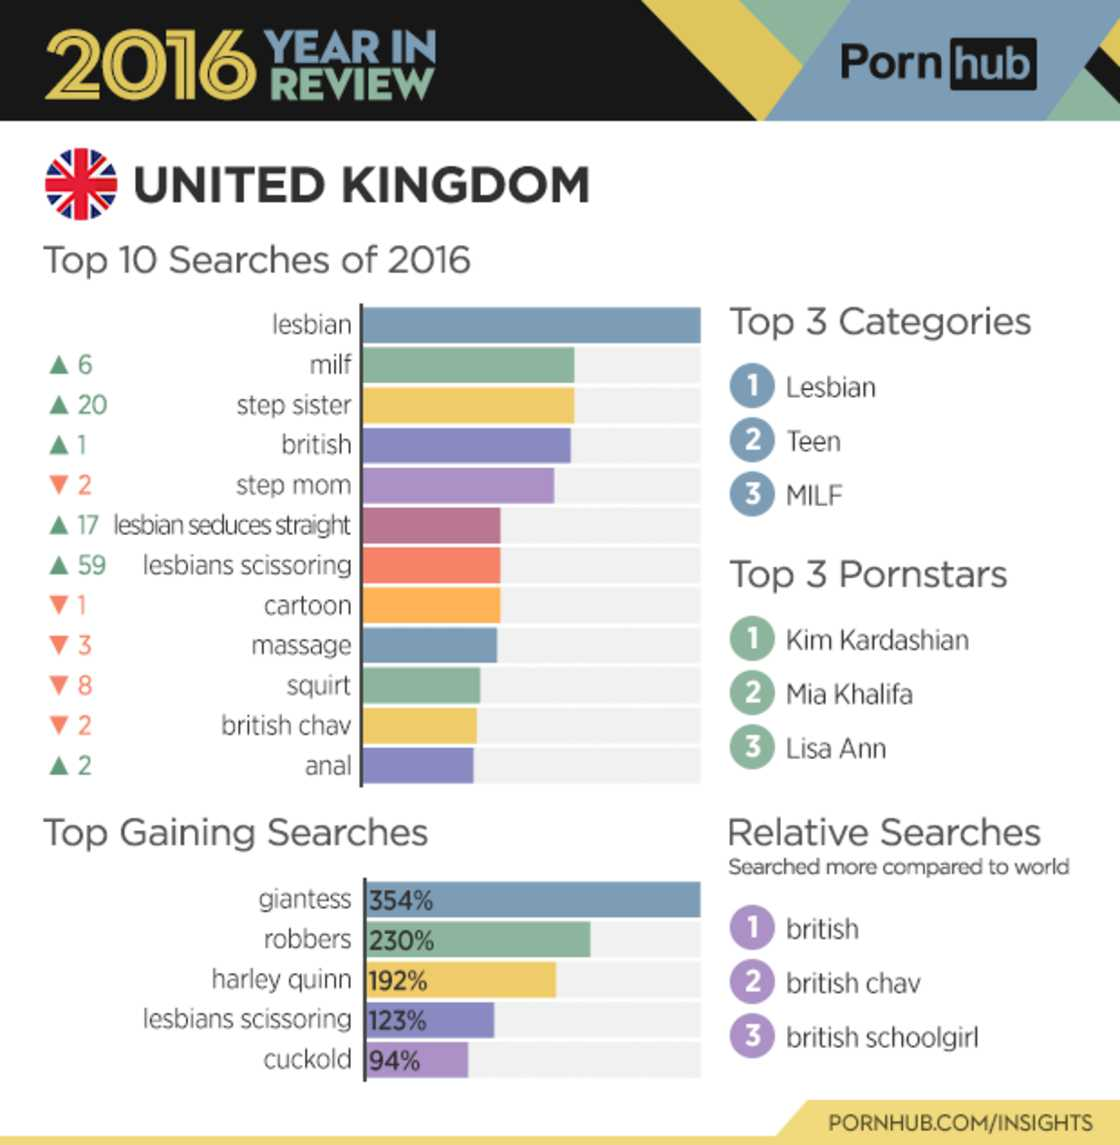 Pornhub unveils its 2016 statistics and reveals the most popular key words